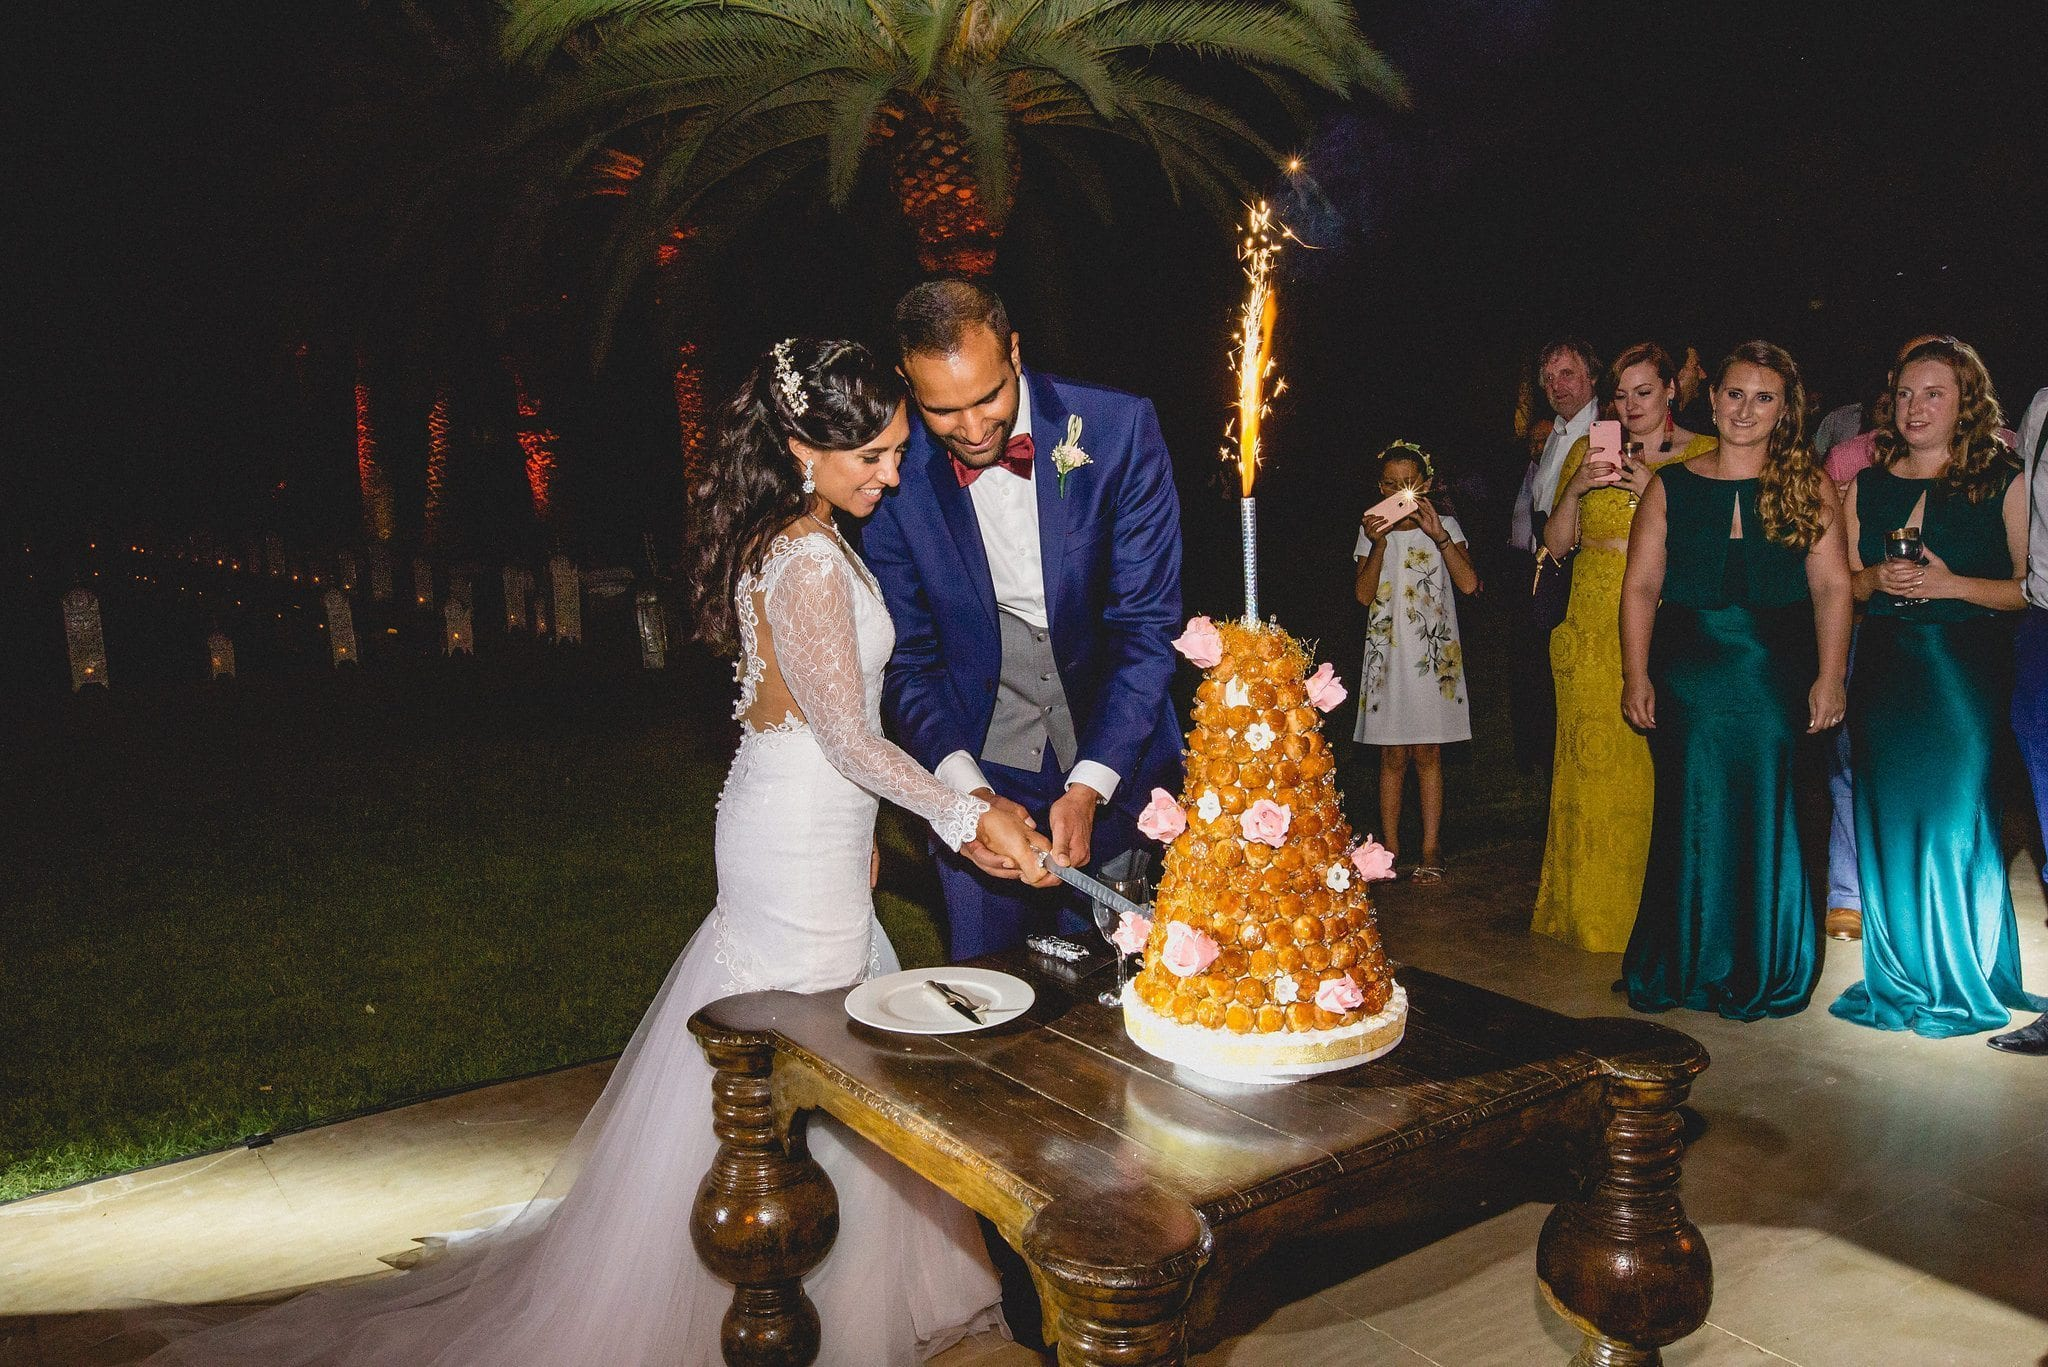 The couple cut their croque en bouche cake outside